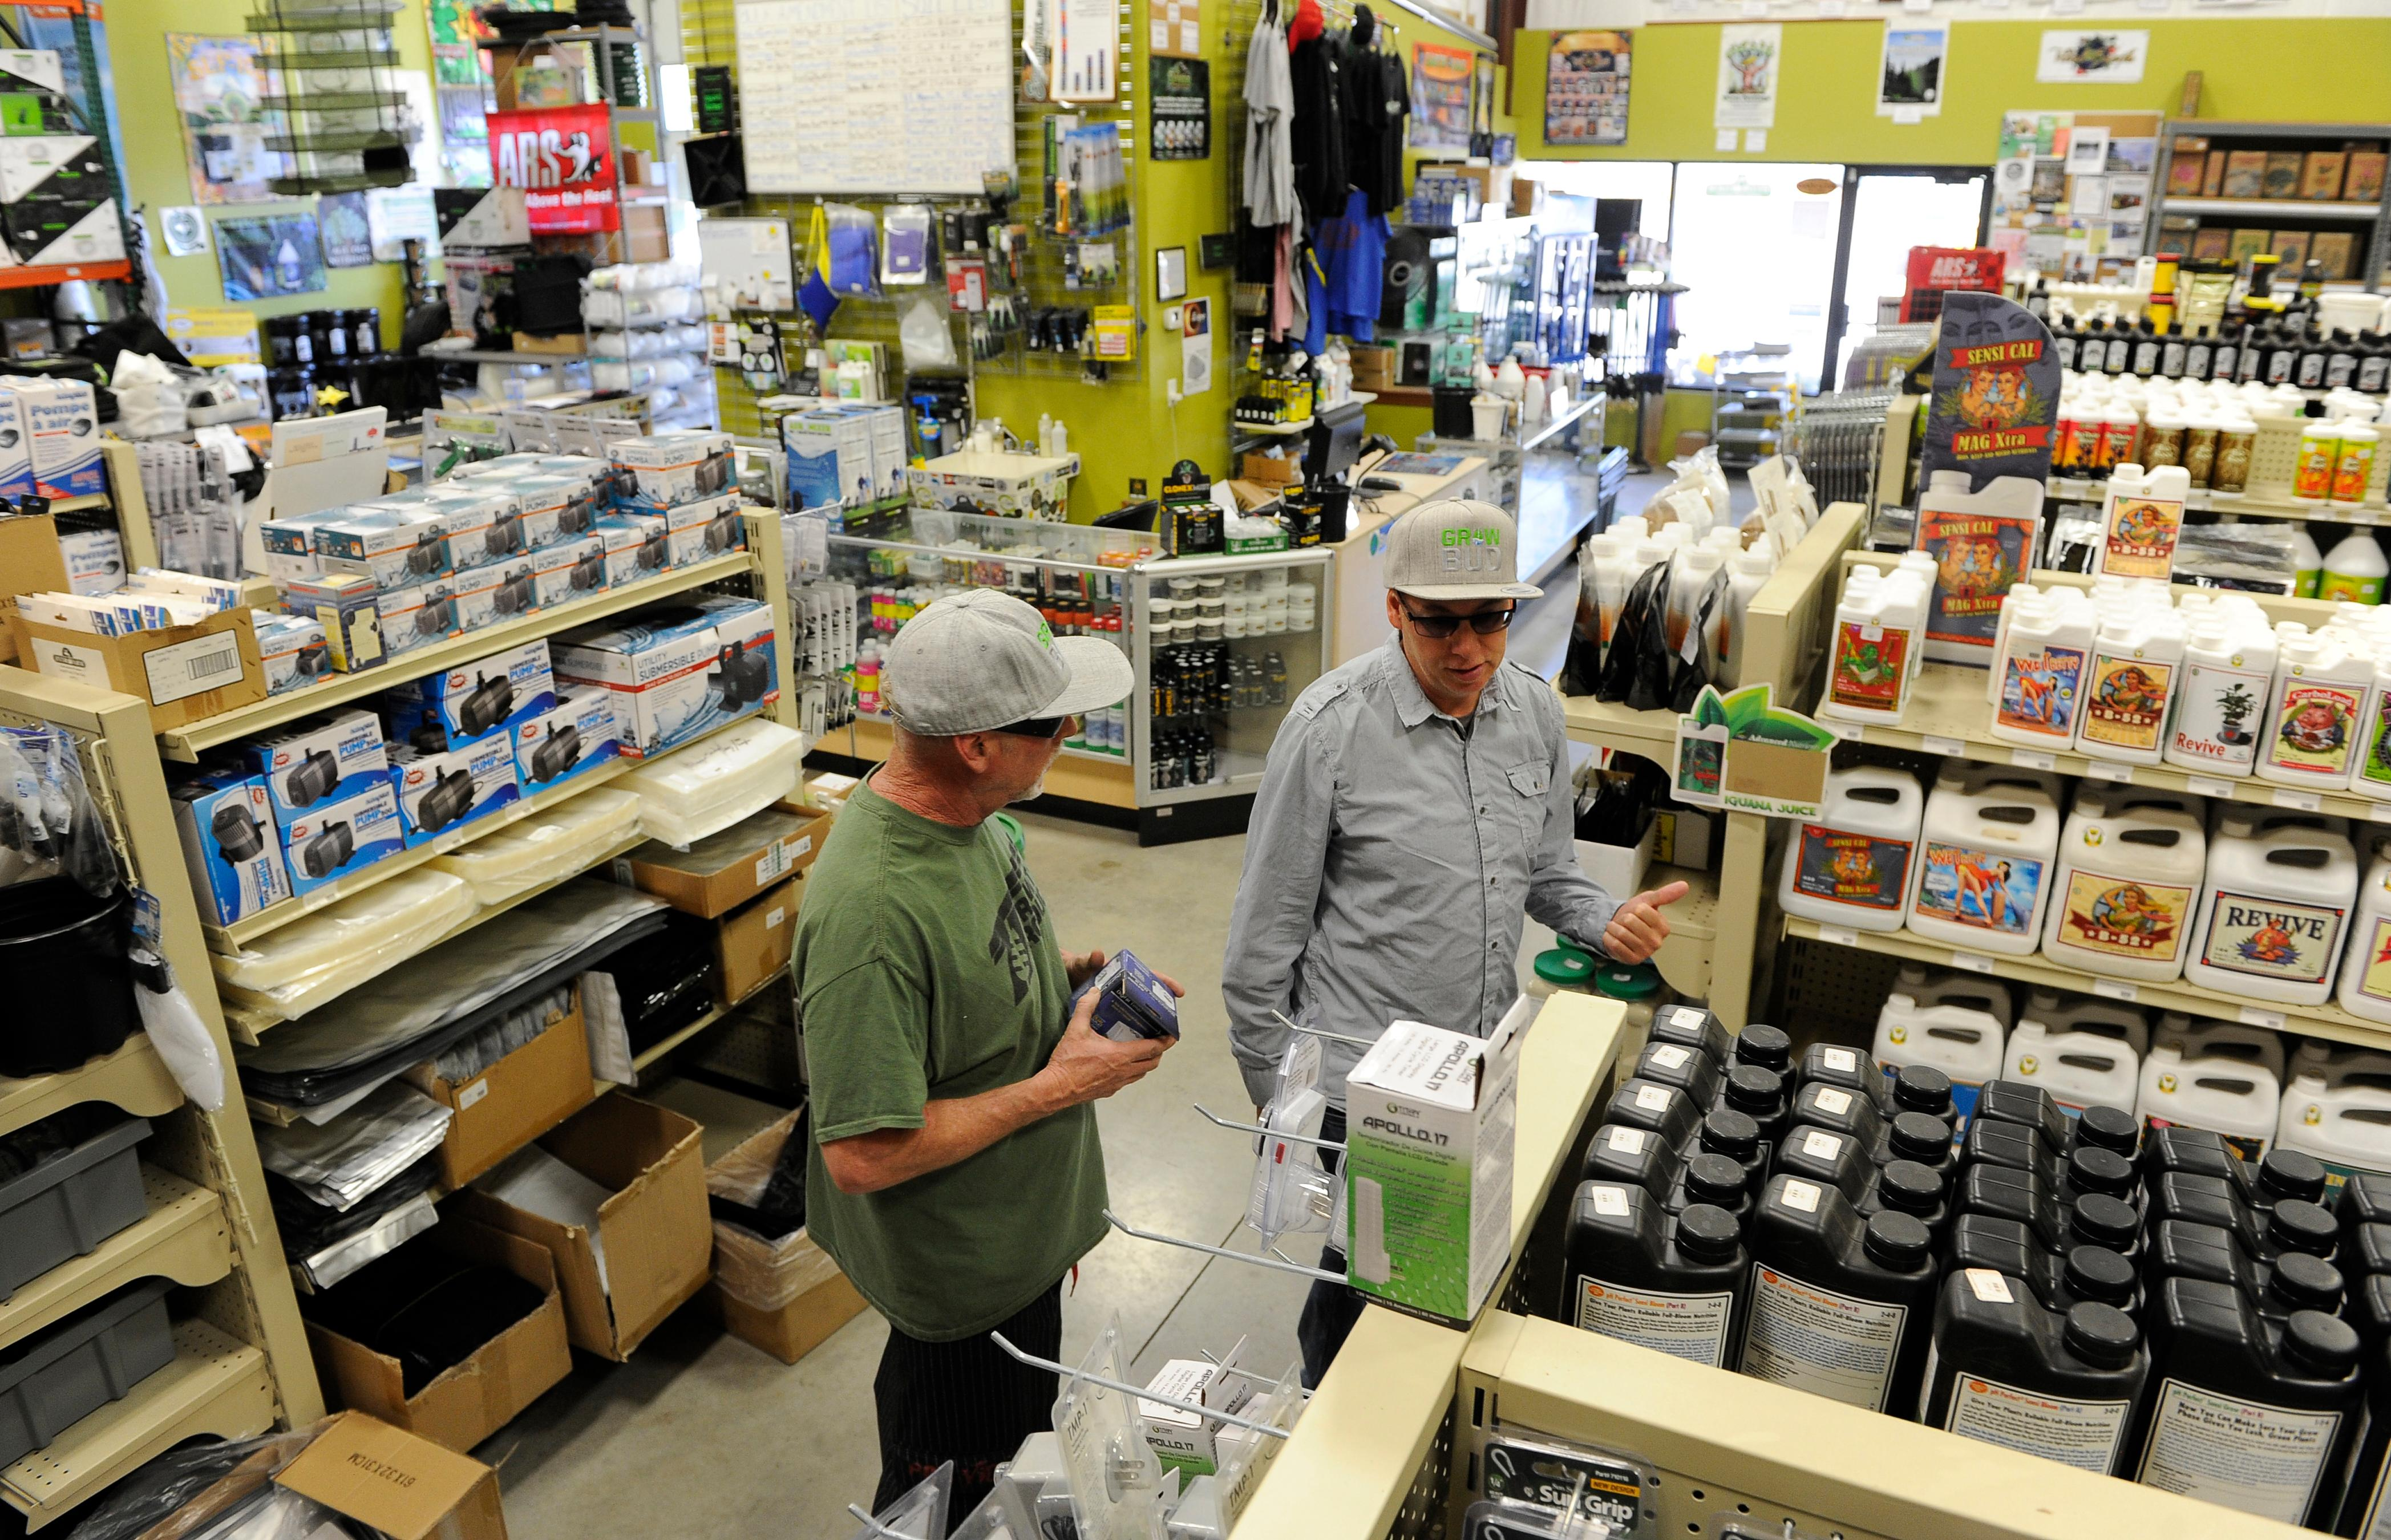 Andy Atkinson / Mail Tribune <br><p>Jamin Giersbach, right, helps a customer inside Rogue Farmers hydroponic store in Talent.</p>